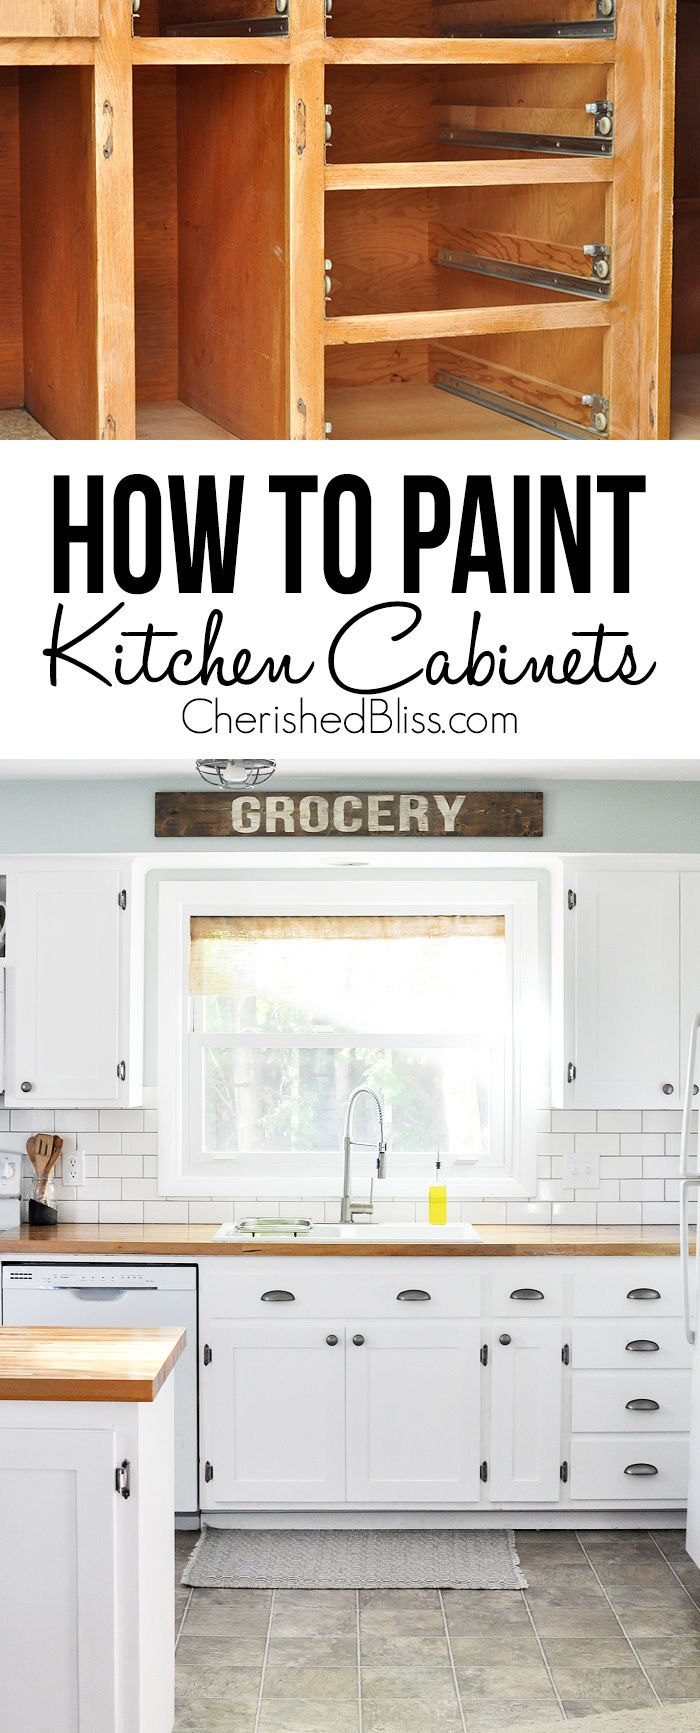 Do you have ugly kitchen cabinets that need a makeover? This tutorial shows you How to Paint Kitchen Cabinets to give your kitchen a facelift on a budget.